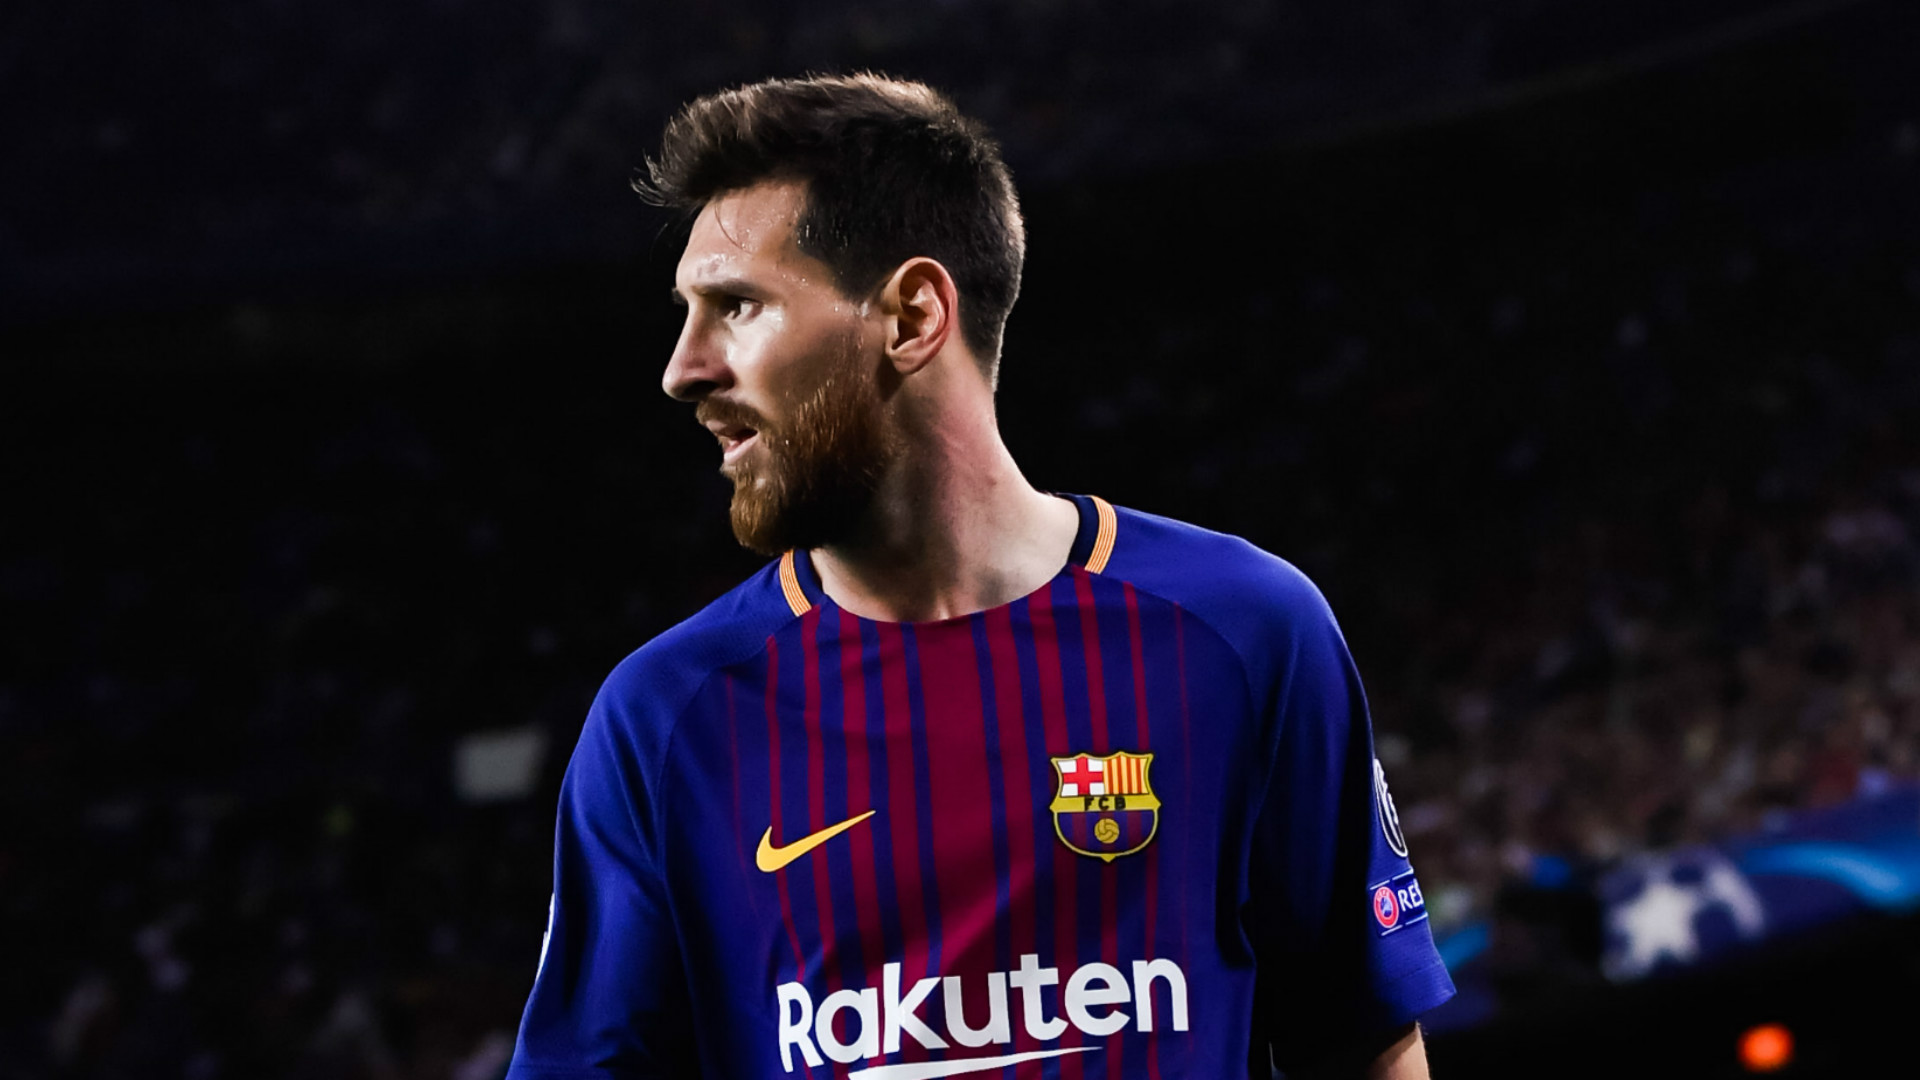 https://images.performgroup.com/di/library/GOAL/ba/62/lionel-messi-barcelona_149a8ldobk4qy16avtc5i1vn0a.jpg